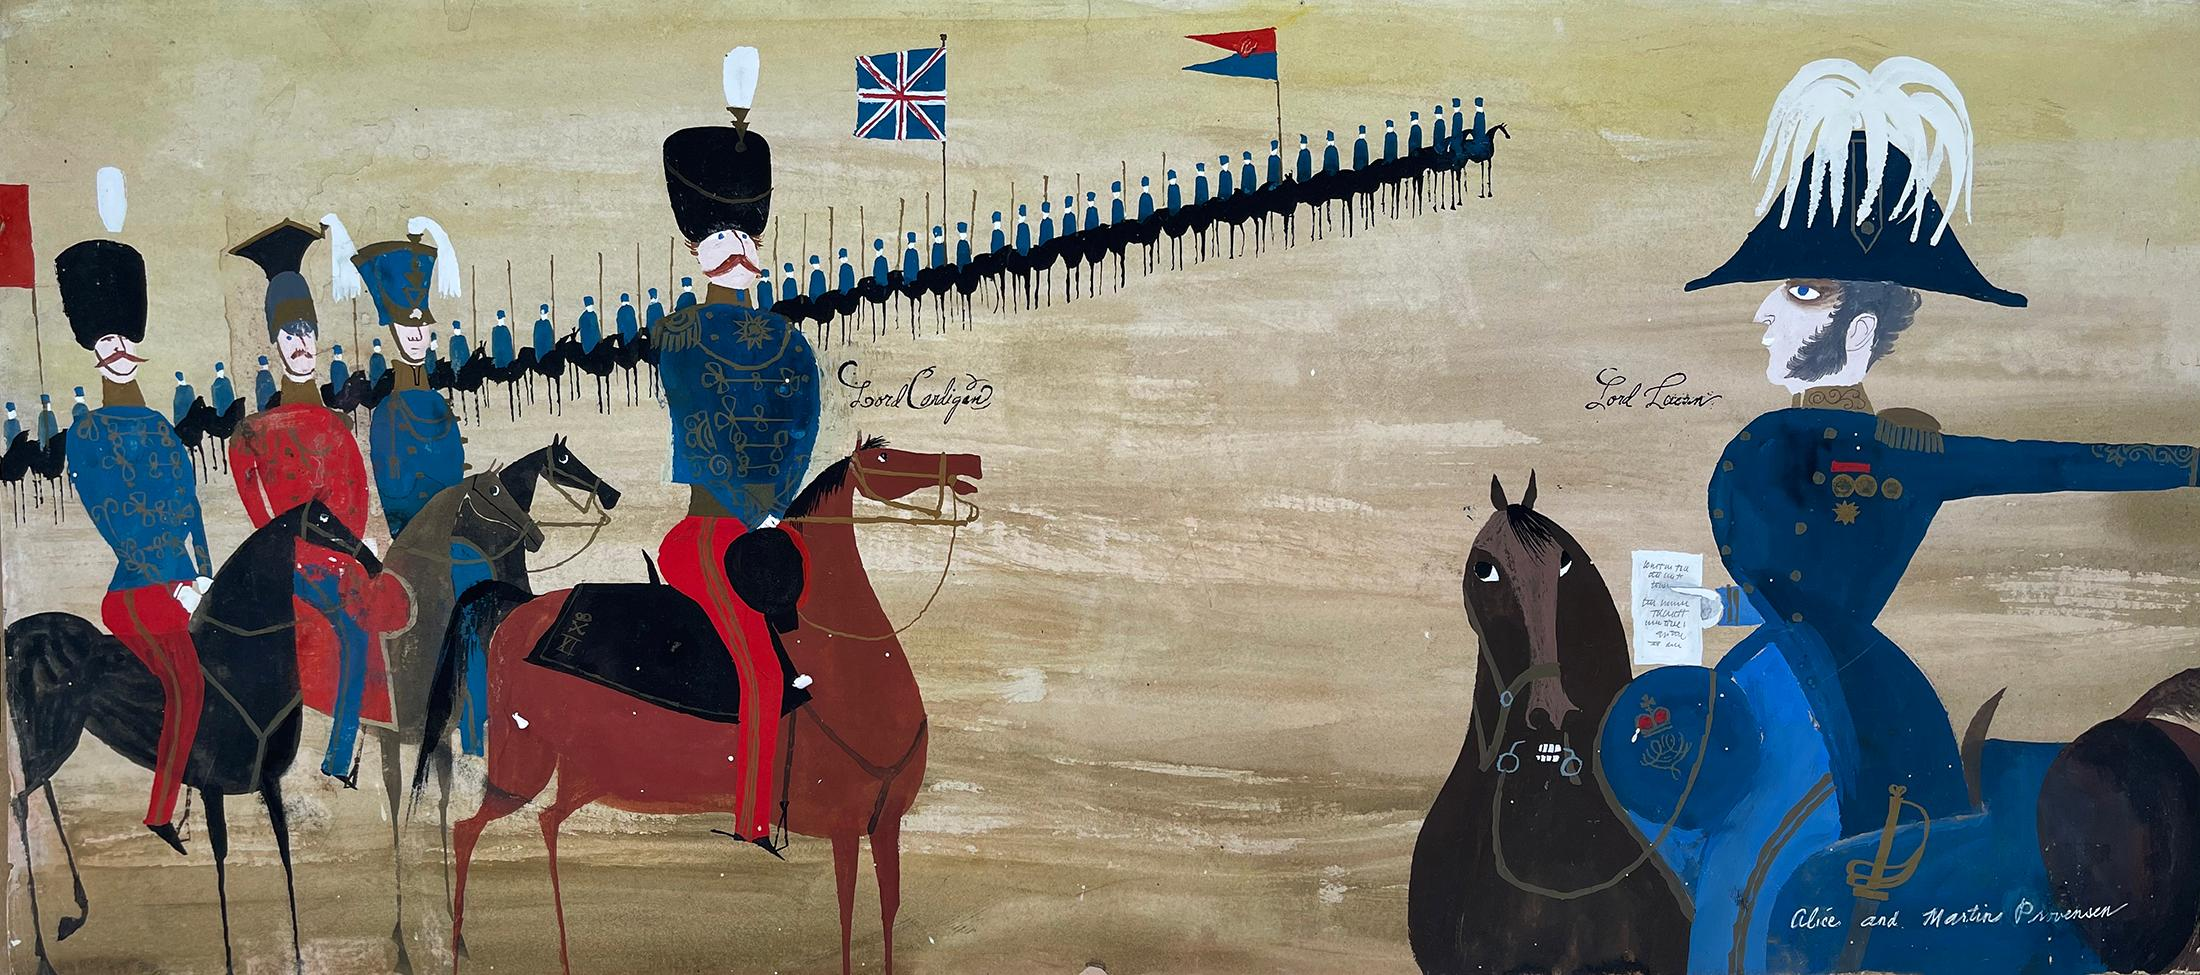 The Charge of the Light Brigade on Horses Lord Cardigan and Lord Lucan